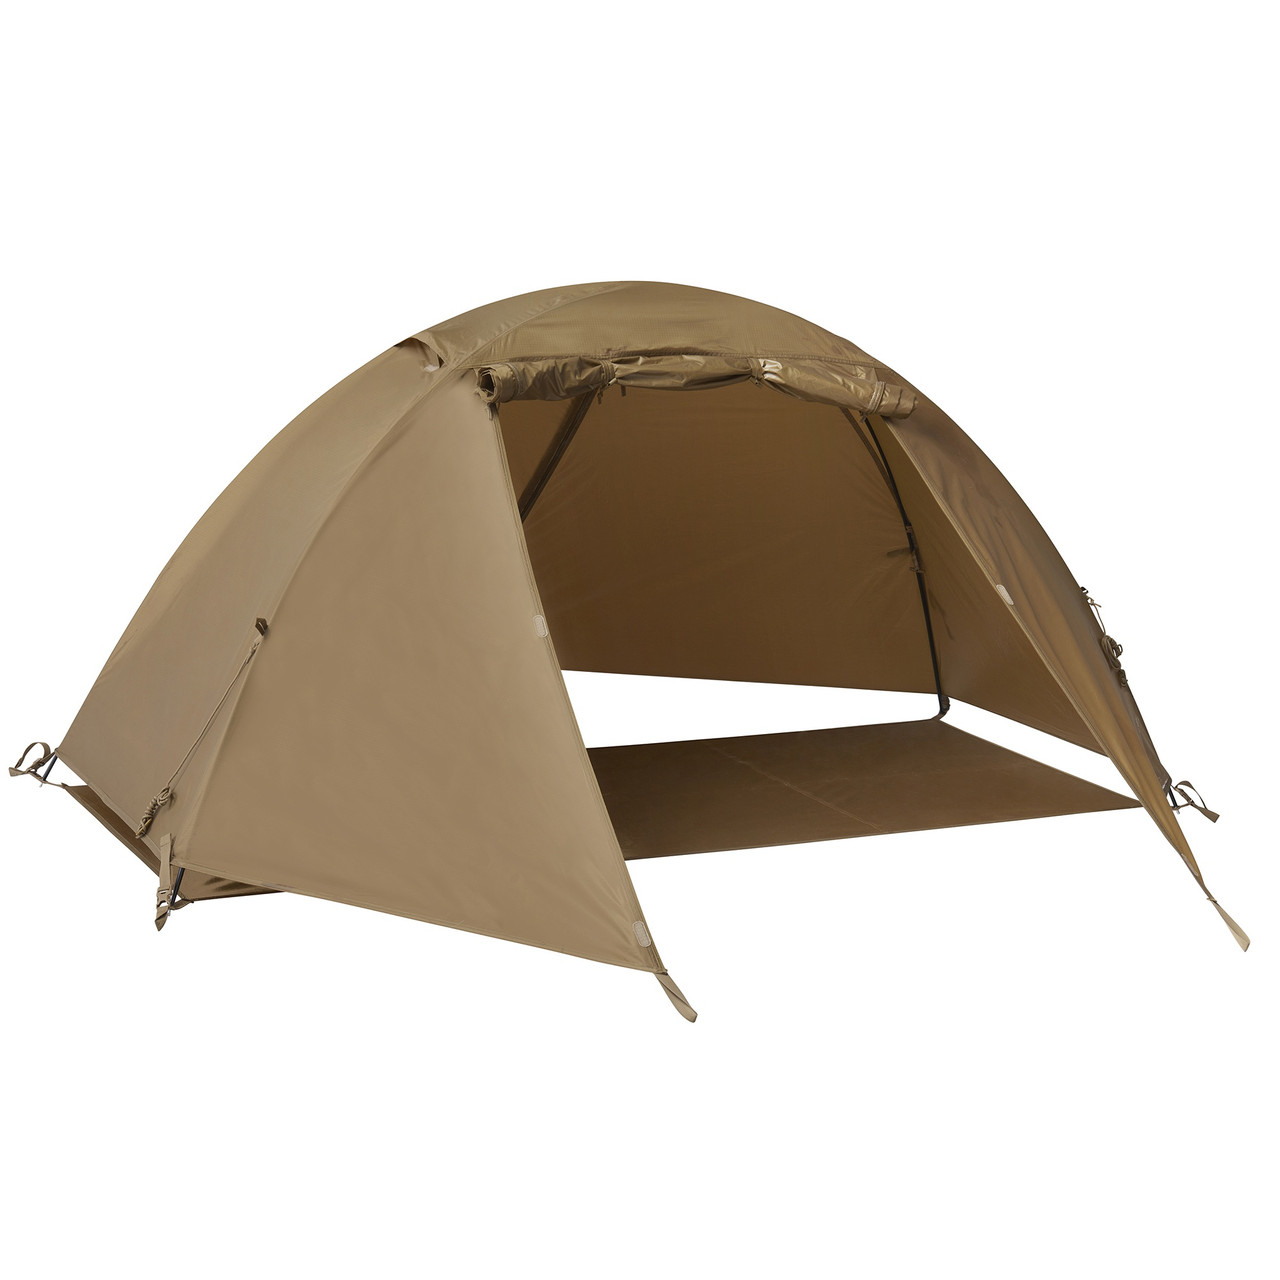 Kelty 1 Man Field Tent Import tent, showing only the rain fly and footprint